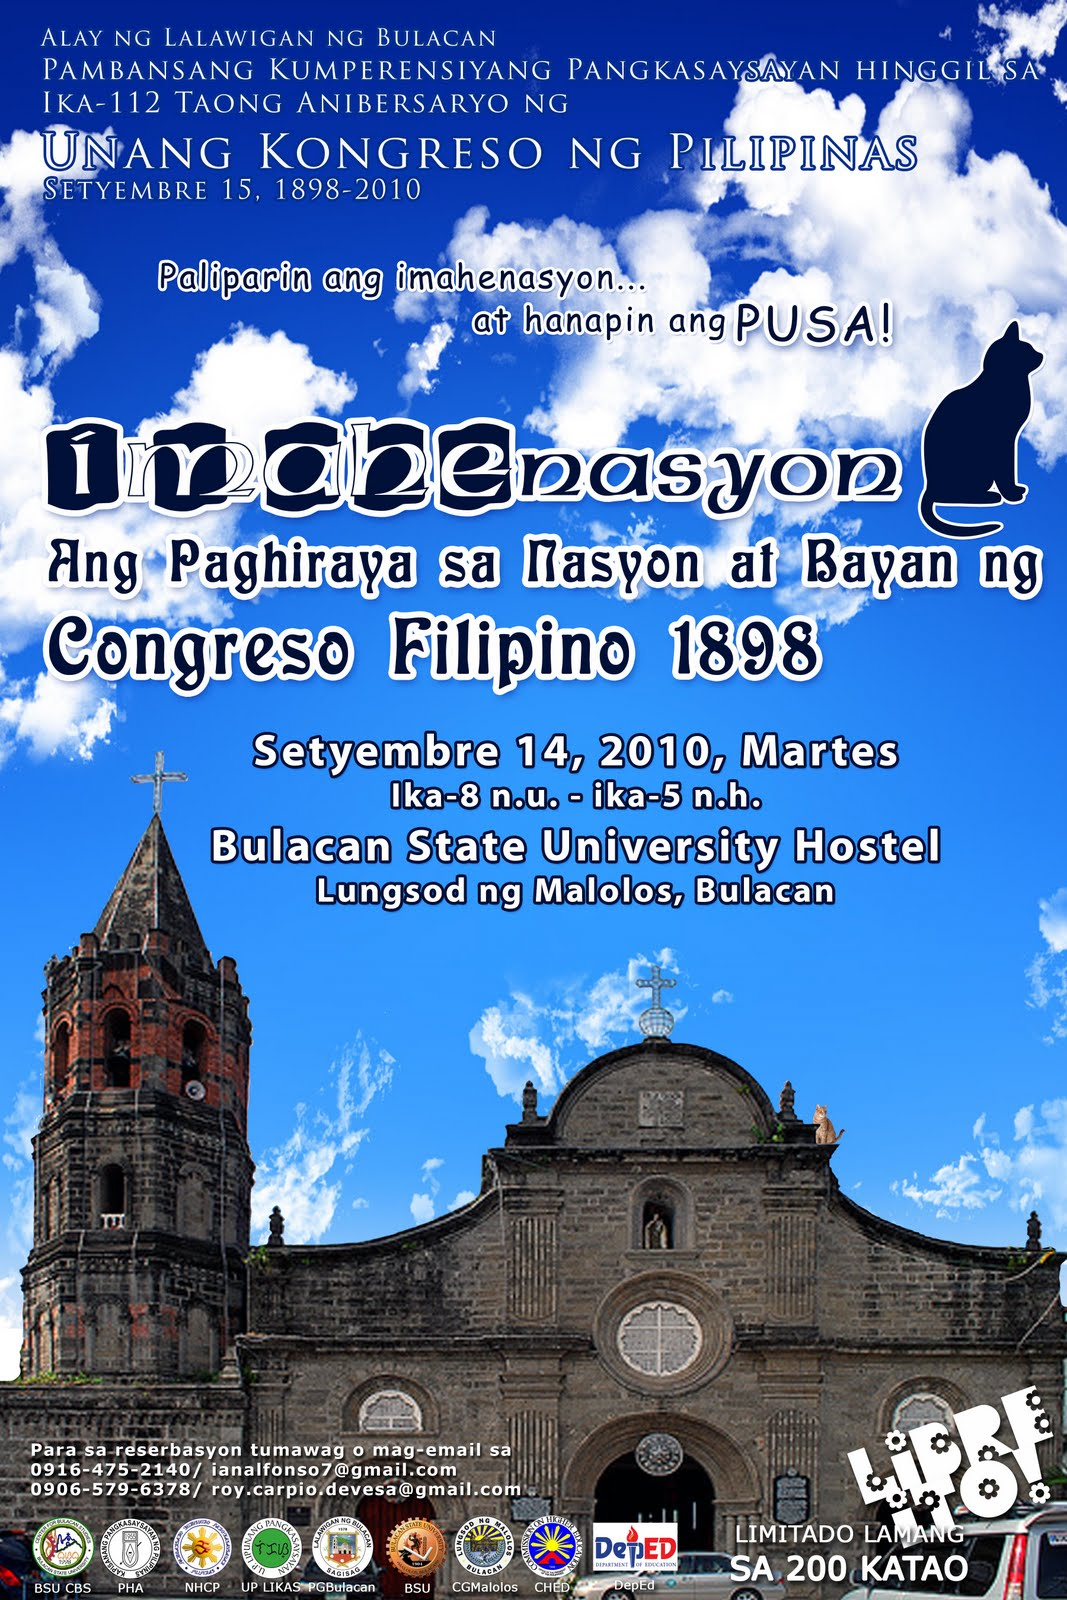 National Conference for the Malolos Congress set on September 14